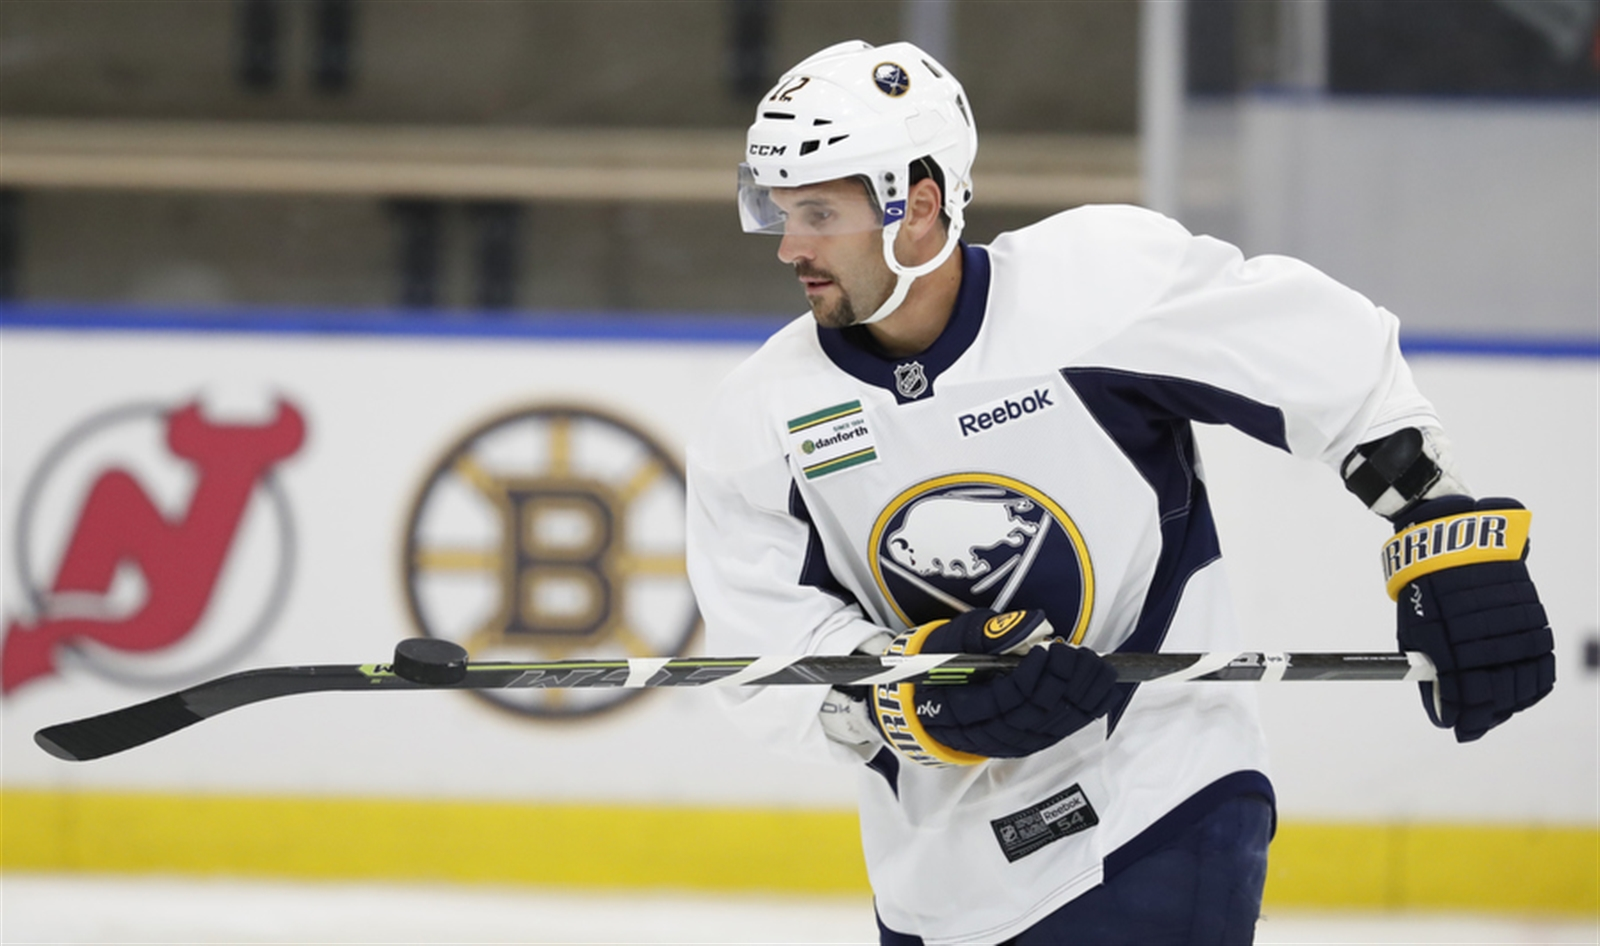 Brian Gionta during a scrimmage at training camp.